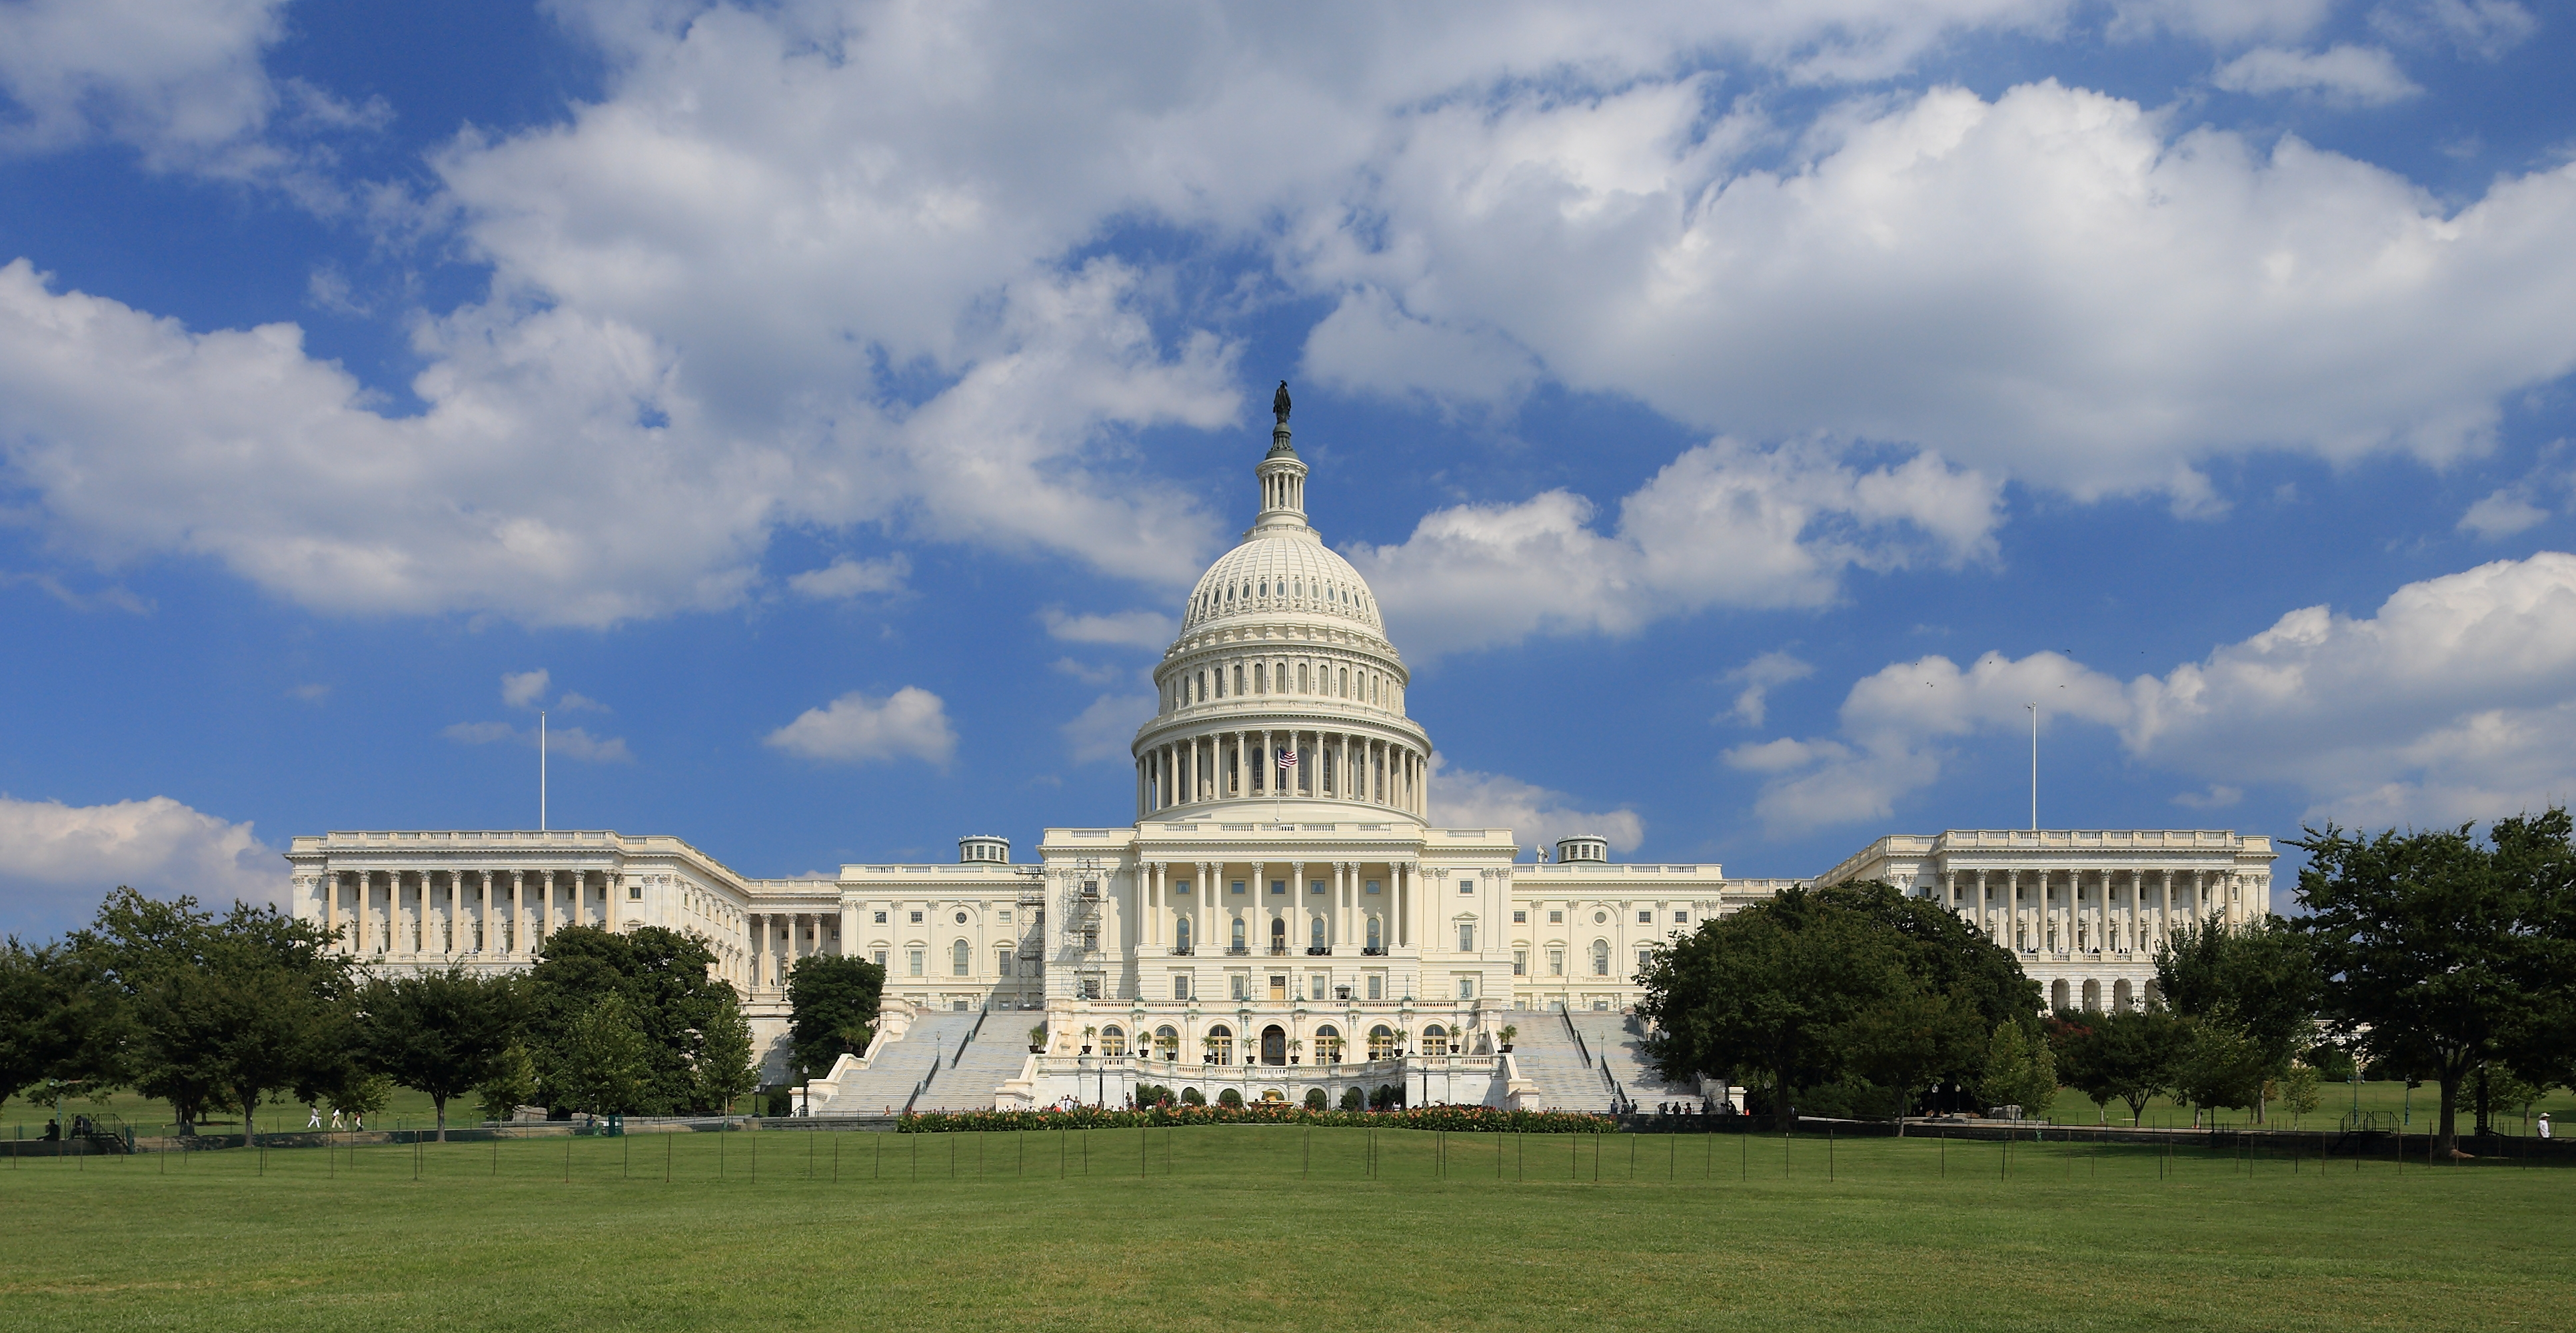 The U.S. Capitol building houses both the House of Representatives and the Senate. It is an example of neoclassical style and is one of the most recognizable buildings in the world.